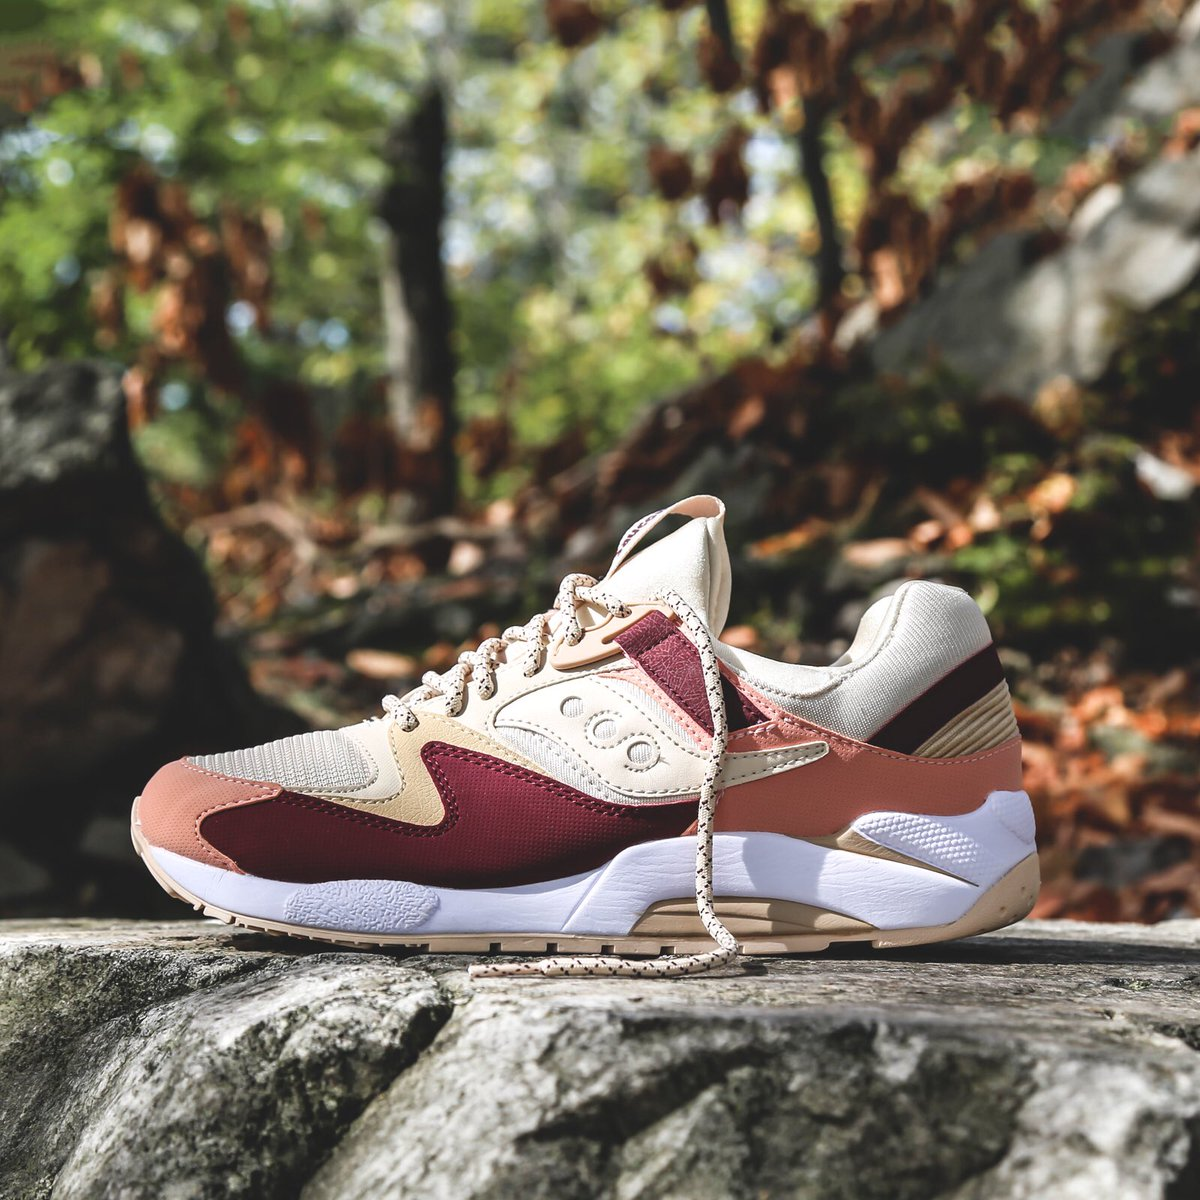 saucony grid 9000 cream red pink